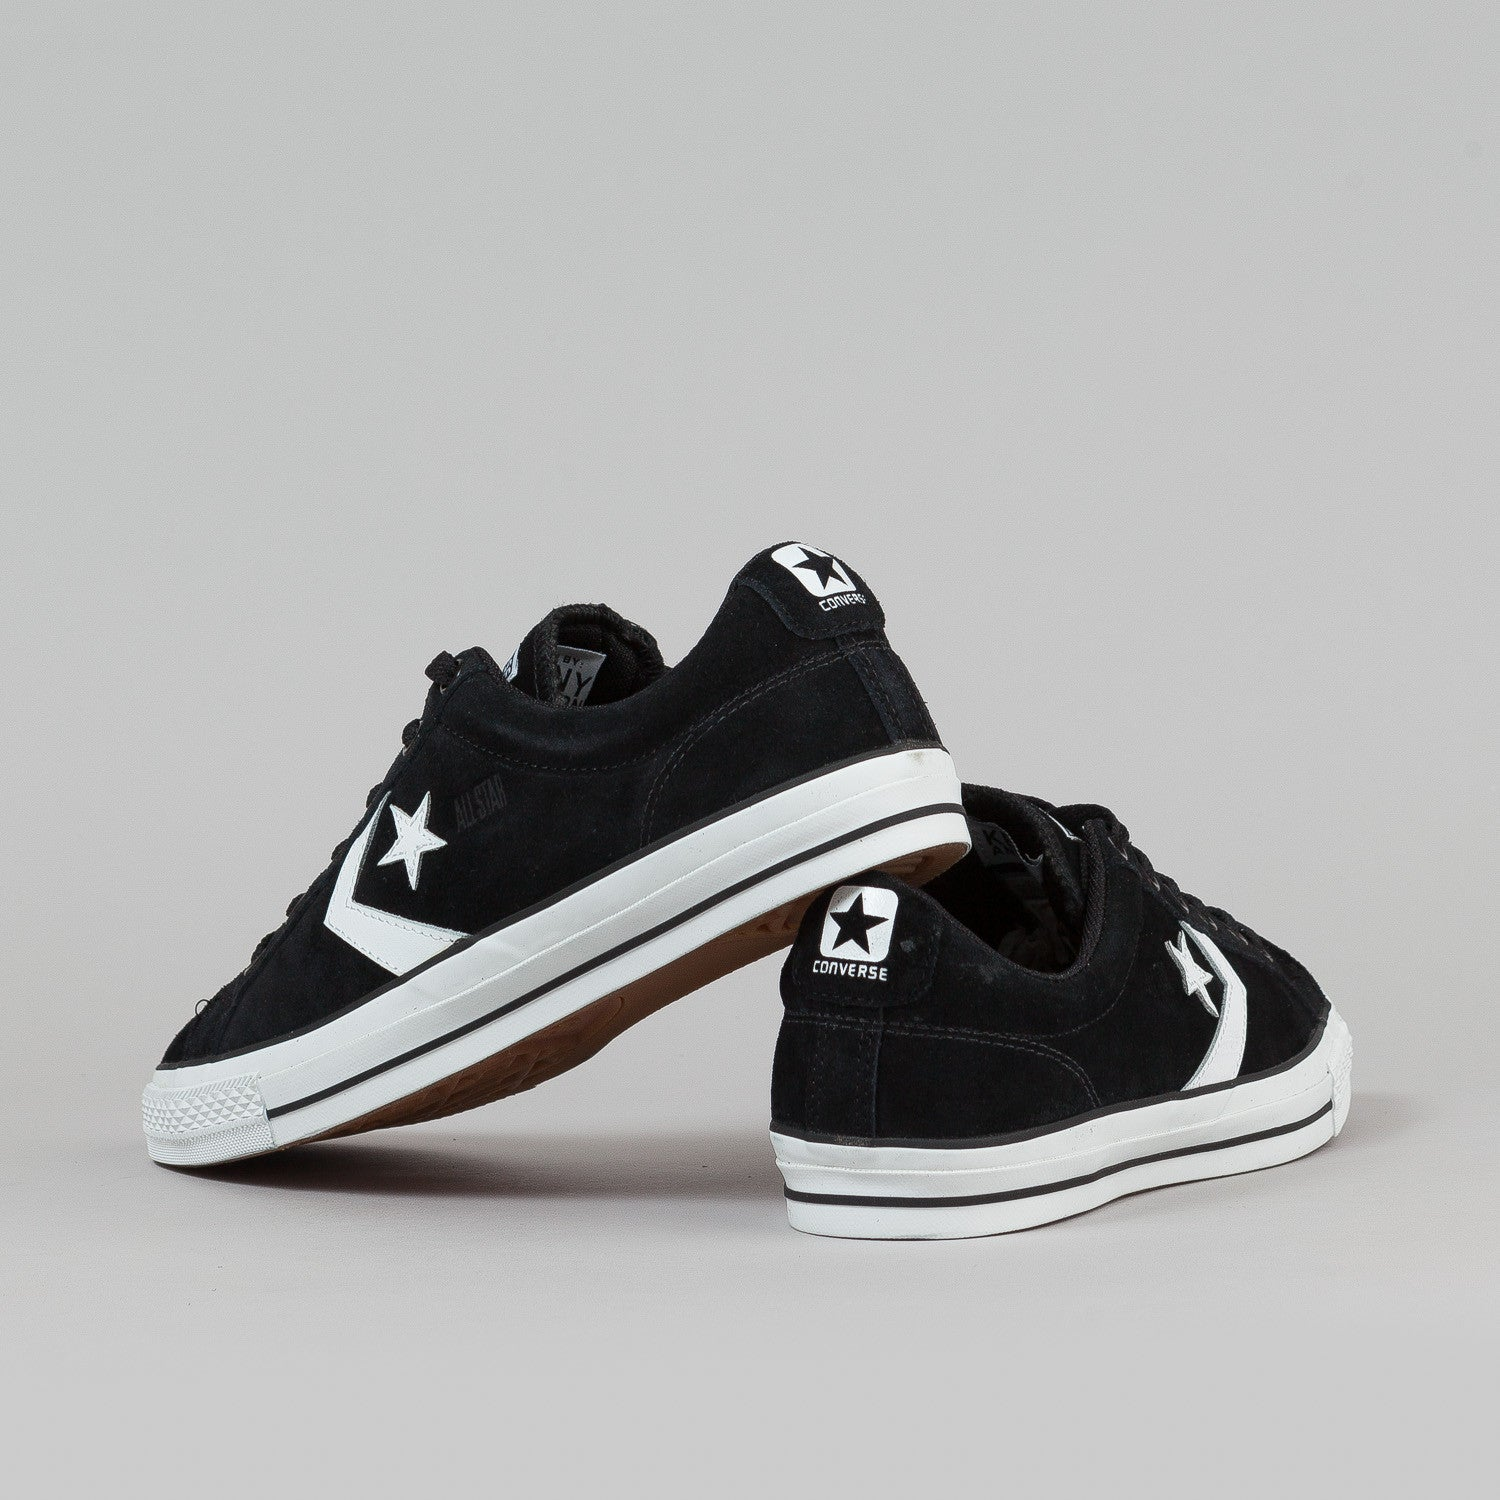 Converse Star Player LS OX Shoes - Black / White